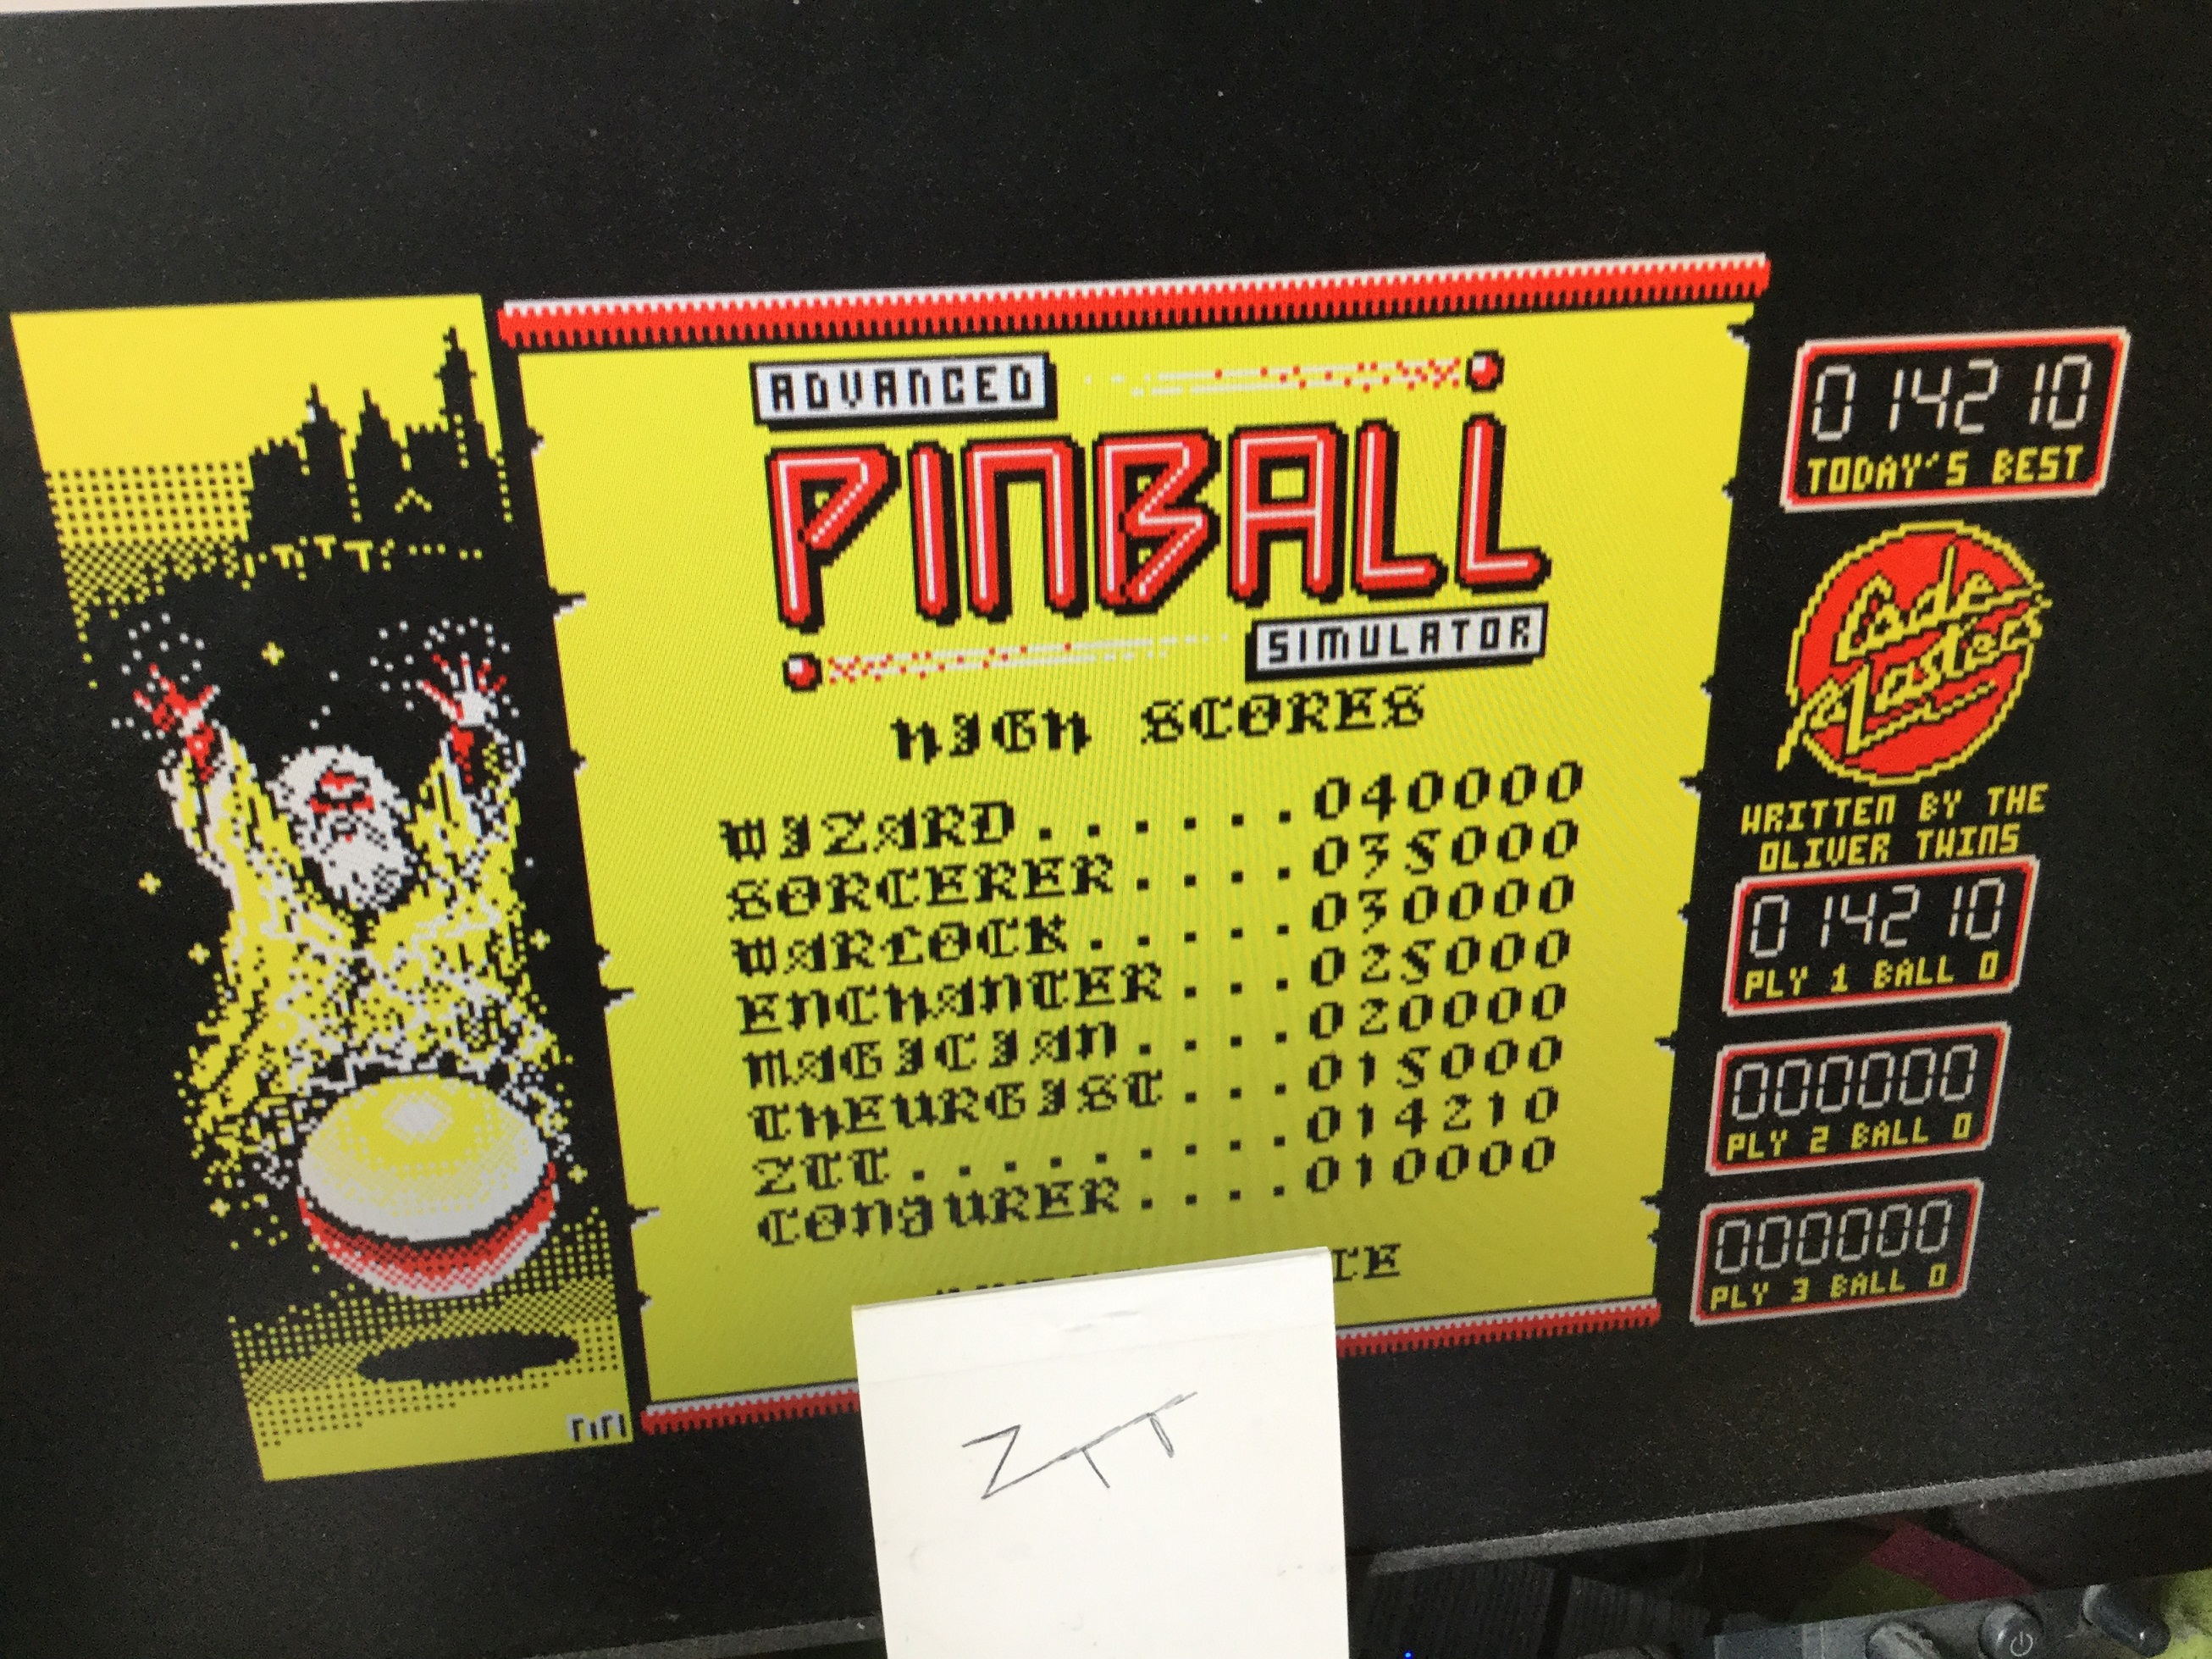 Frankie: Advanced Pinball Simulator (Amstrad CPC Emulated) 14,210 points on 2021-02-14 06:36:53